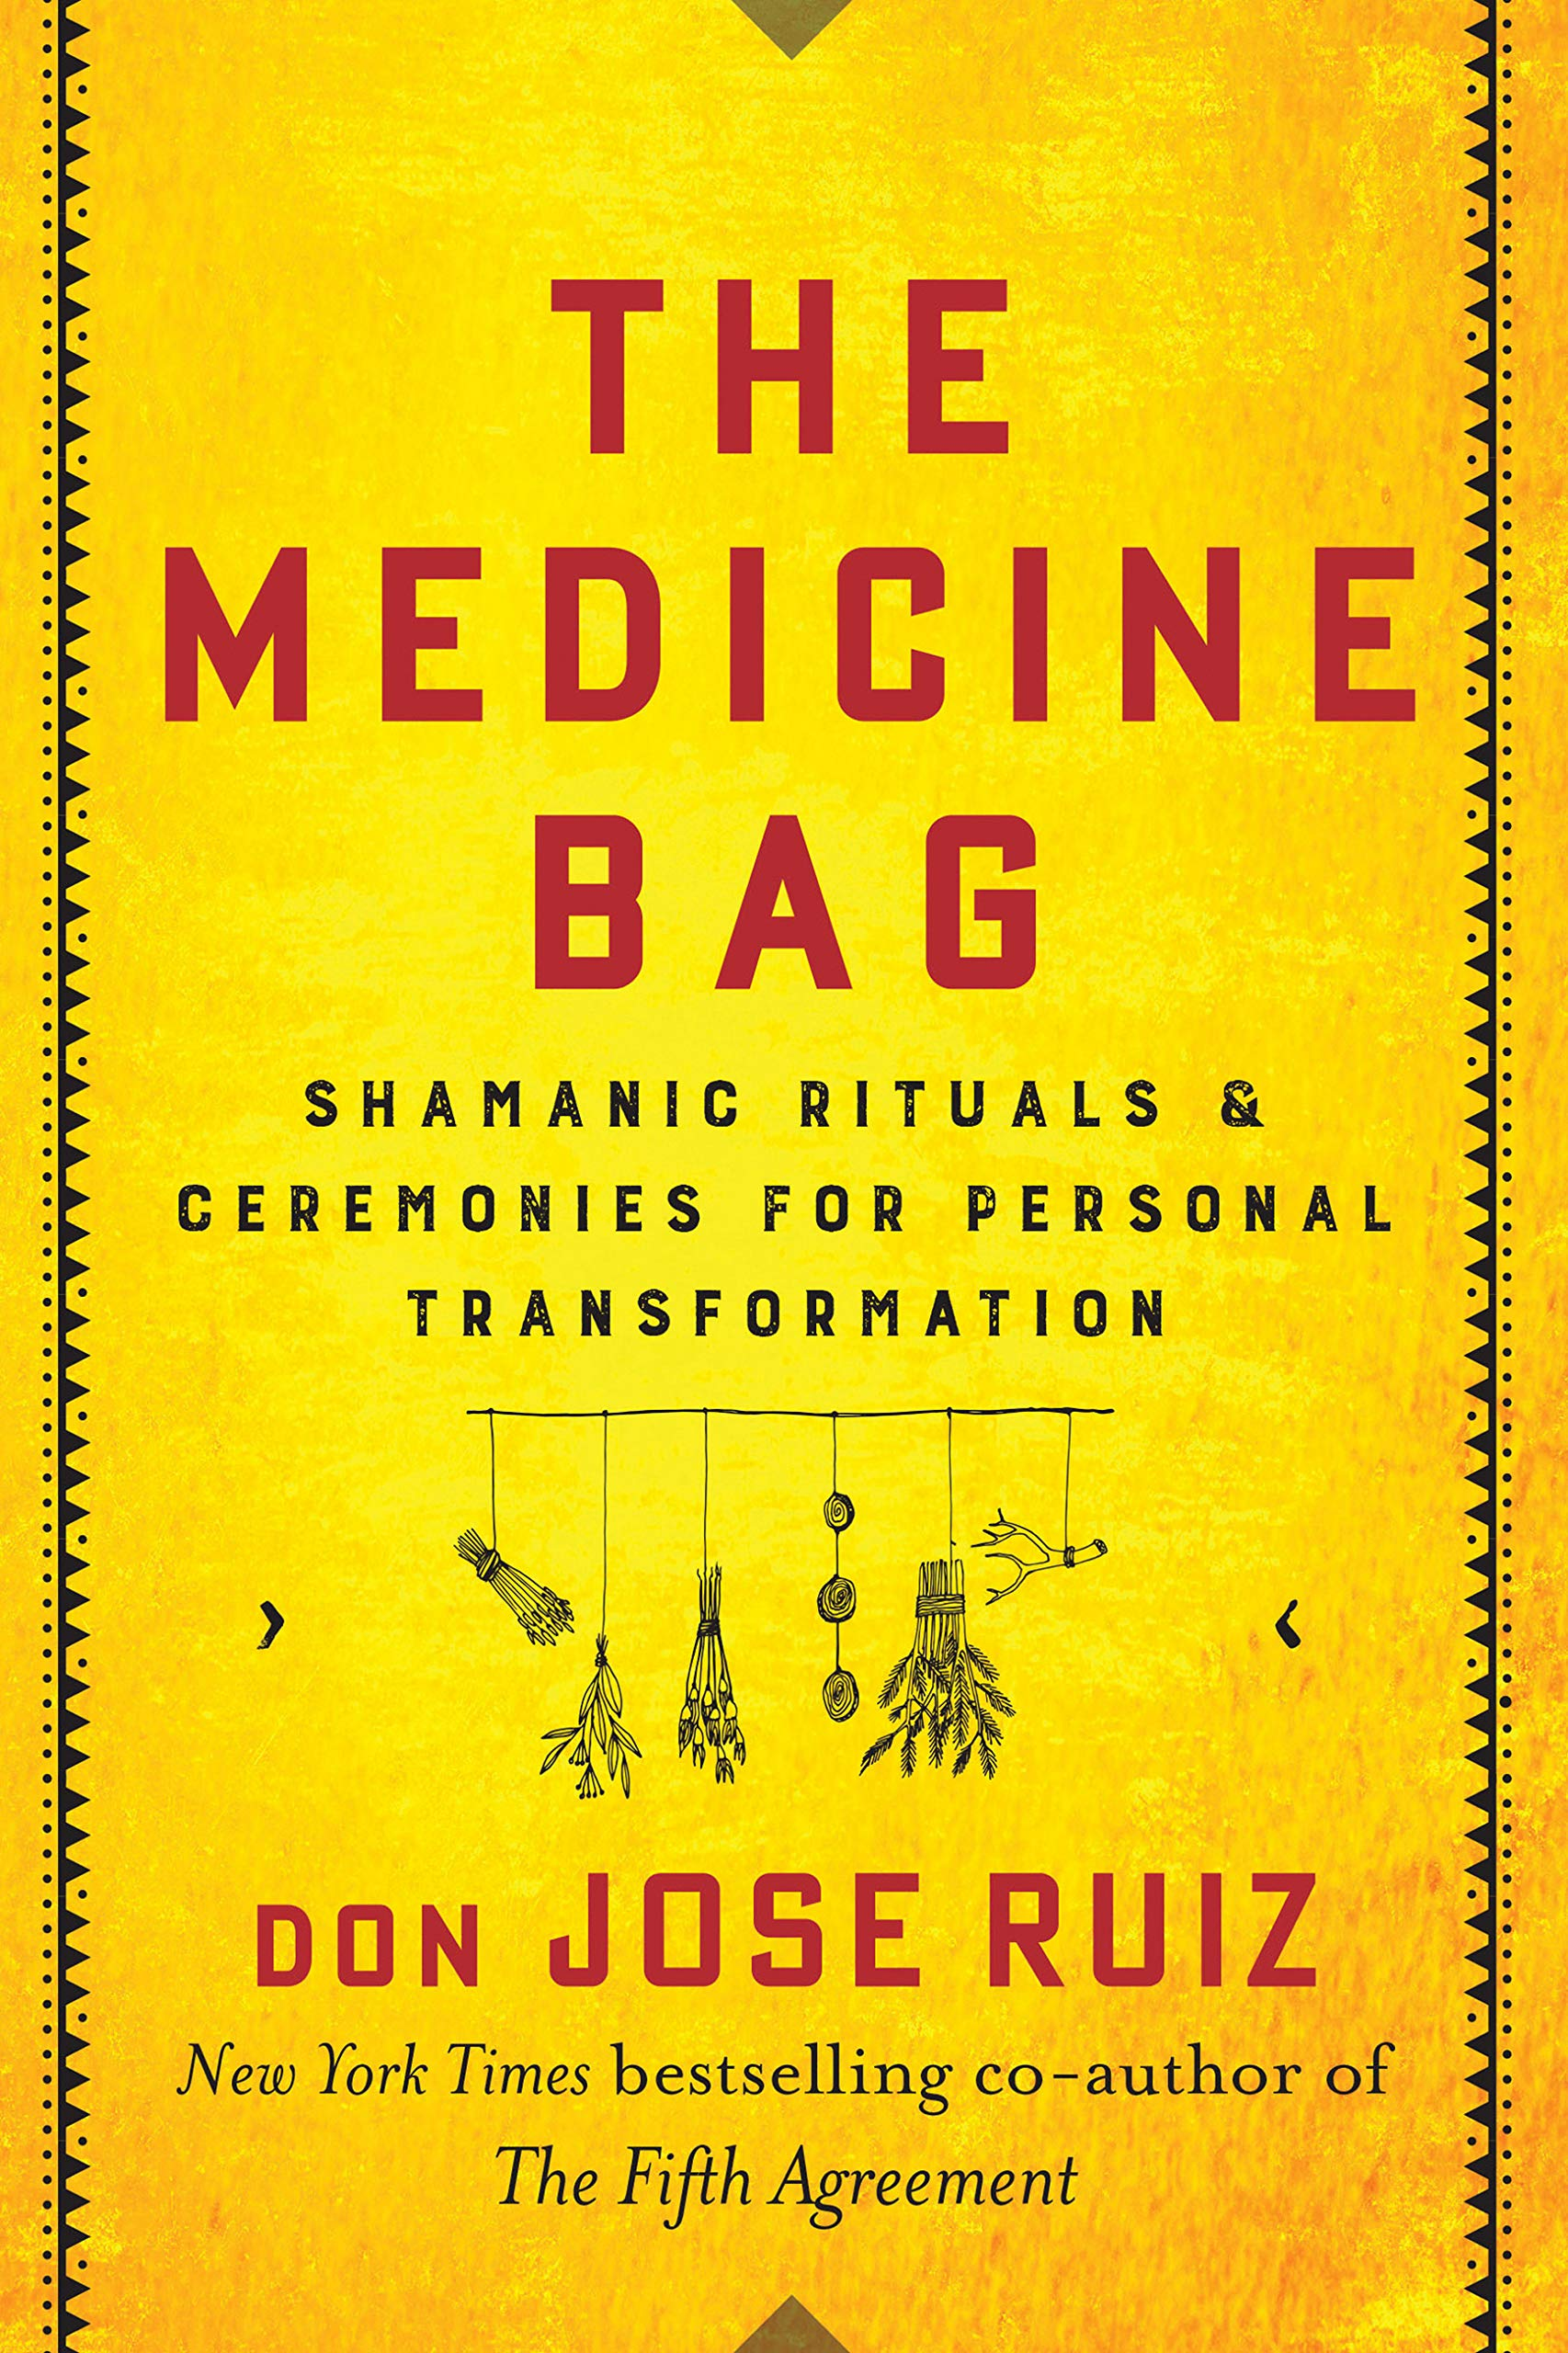 Book Cover The Medicine Bag.jpg